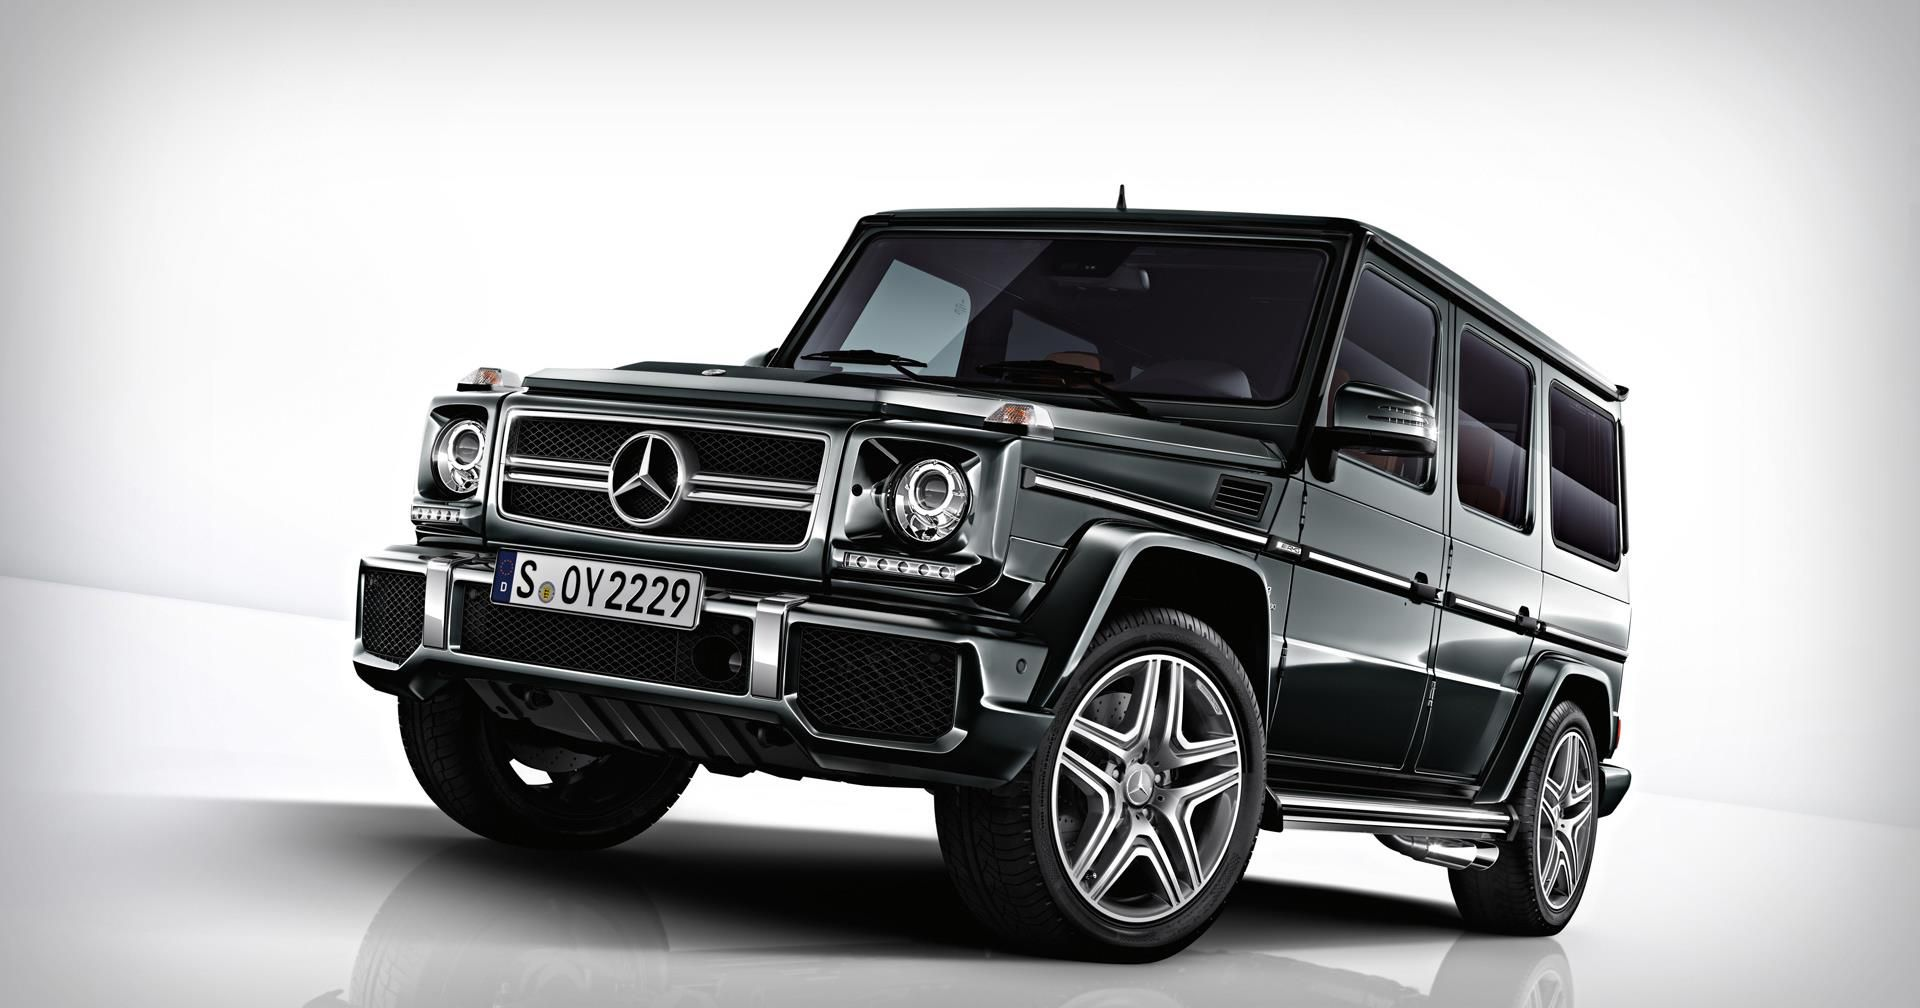 Tank Like Mercedes Benz G Wagon Ideal For Baby On Board Mercedes